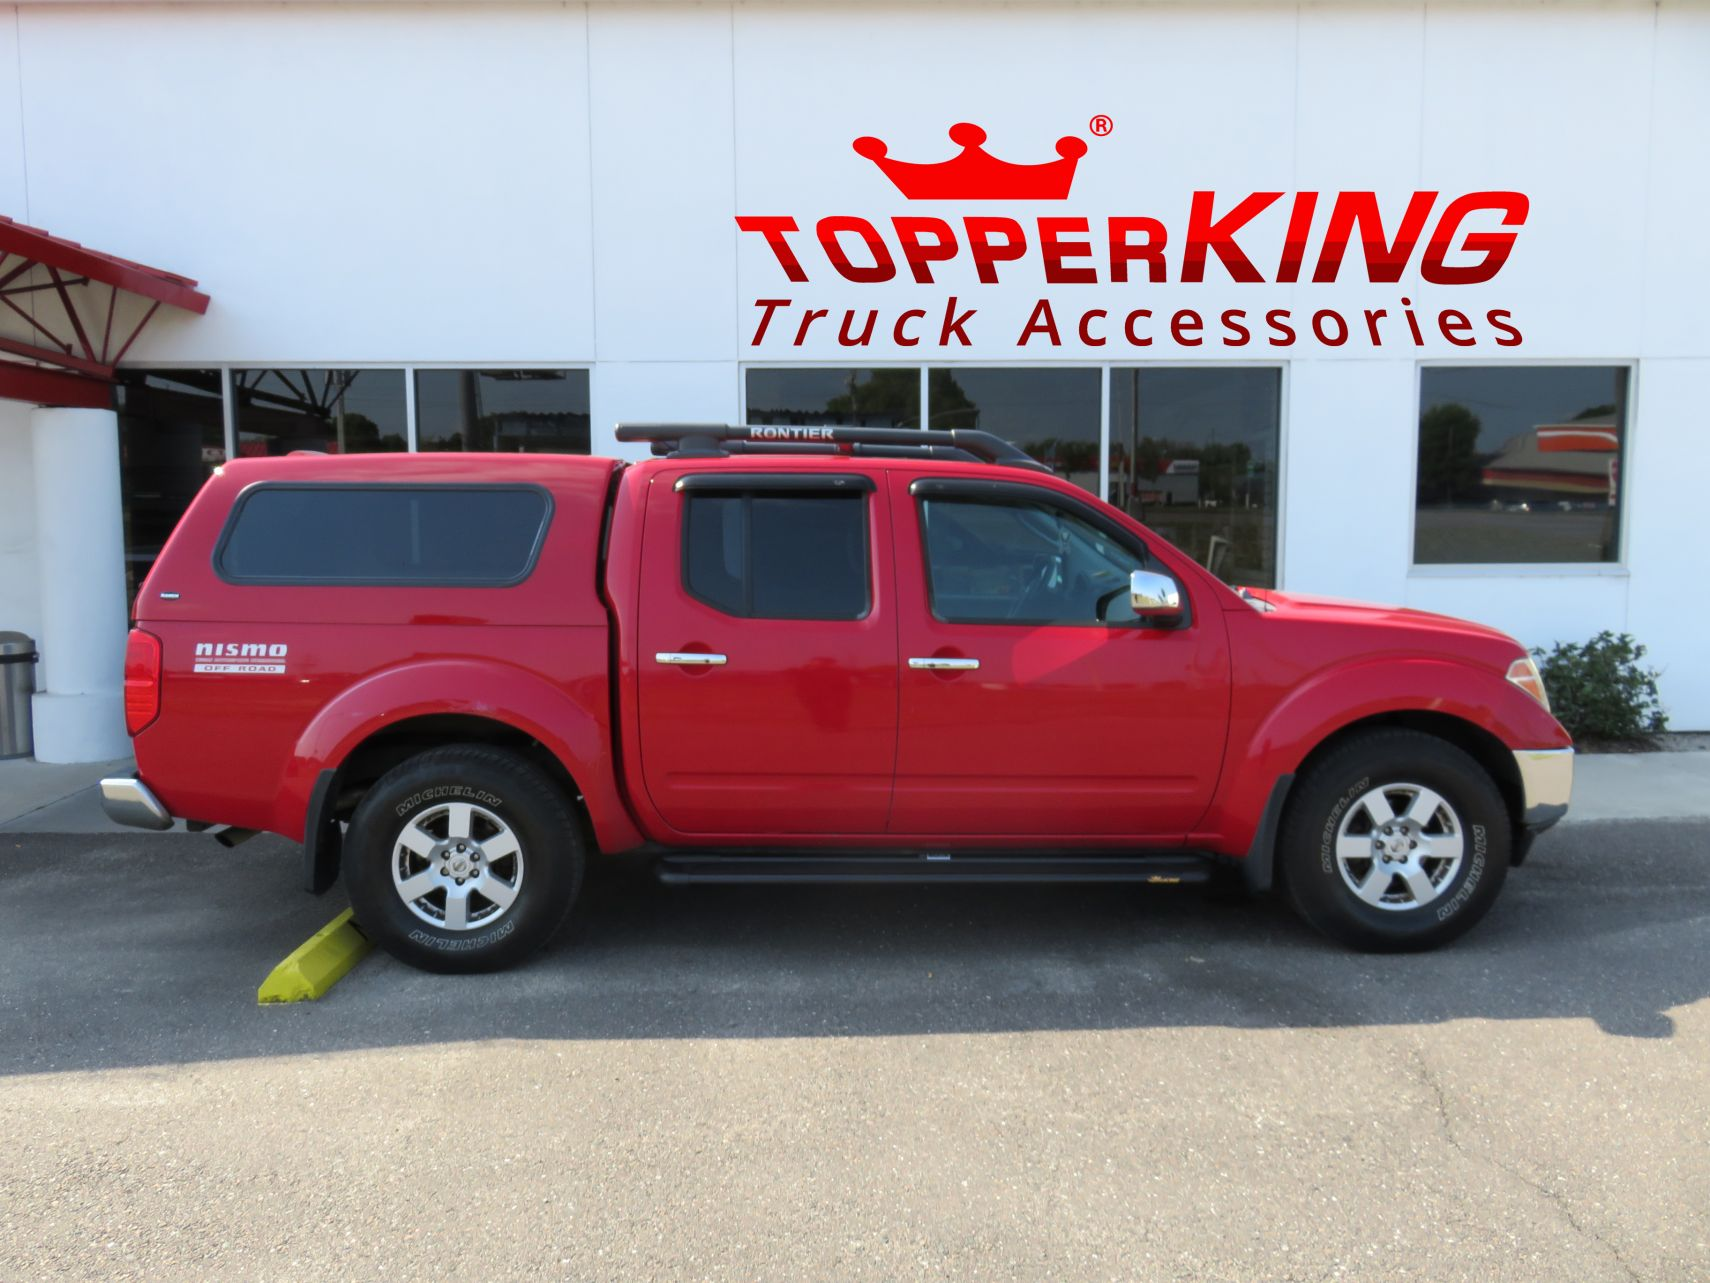 2014 Red Nissan Frontier with a Ranch Echo fiberglass topper, a custom hitch, blacked out nerf bars, and roof racks by TopperKING in Brandon, FL 813-689-2449 Call today to start on your truck!